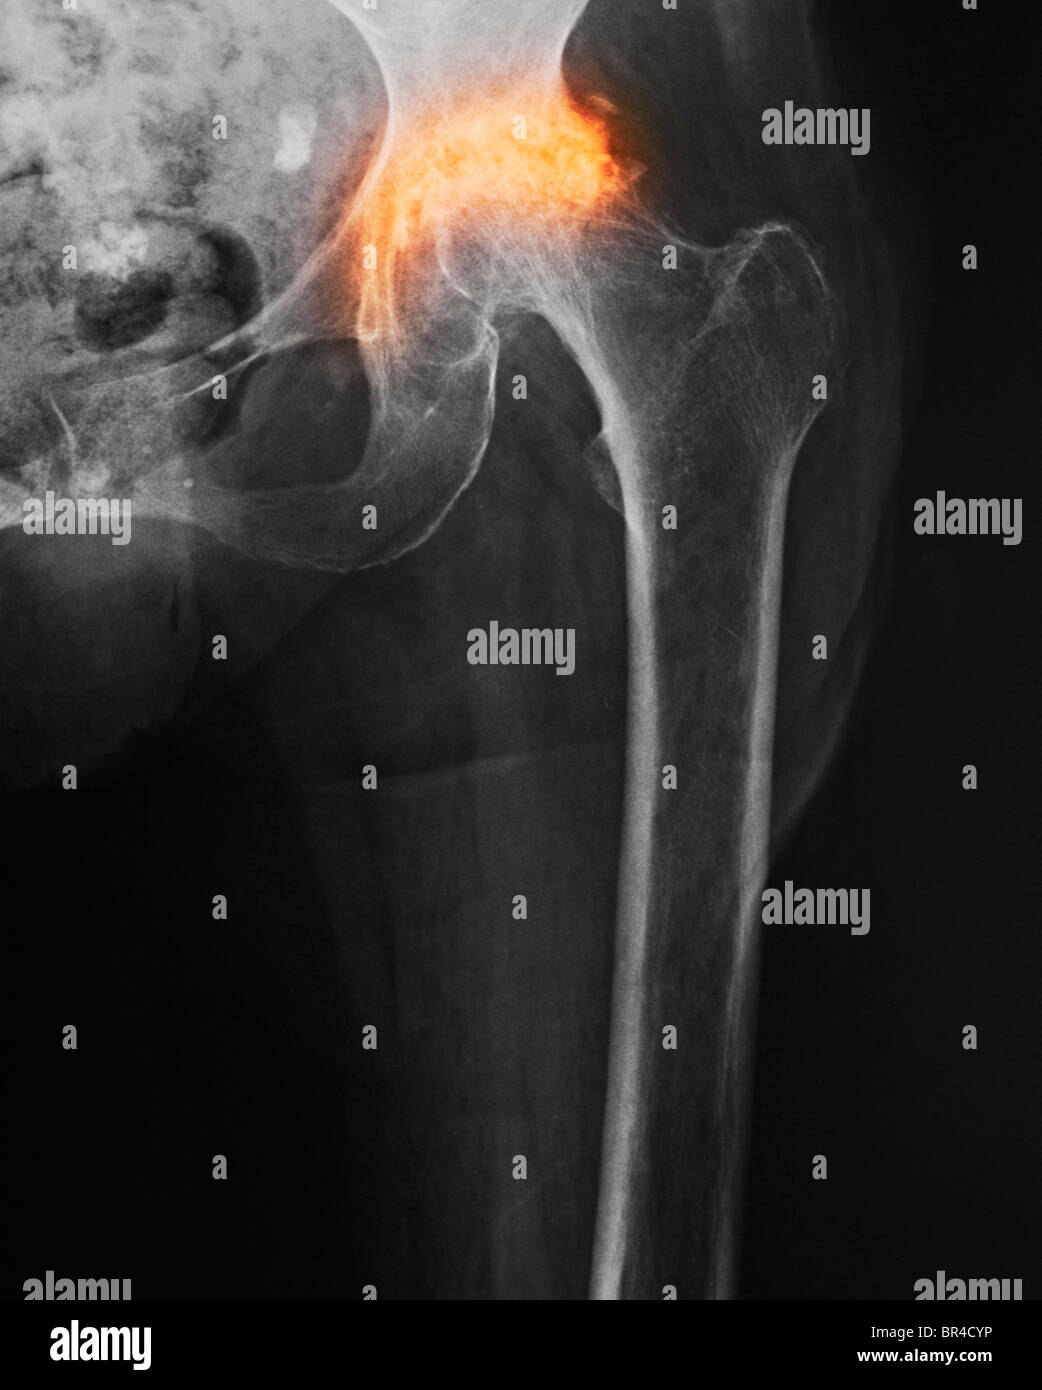 x-ray showing severe degenerative arthritis of the hip of an 85 year old woman - Stock Image